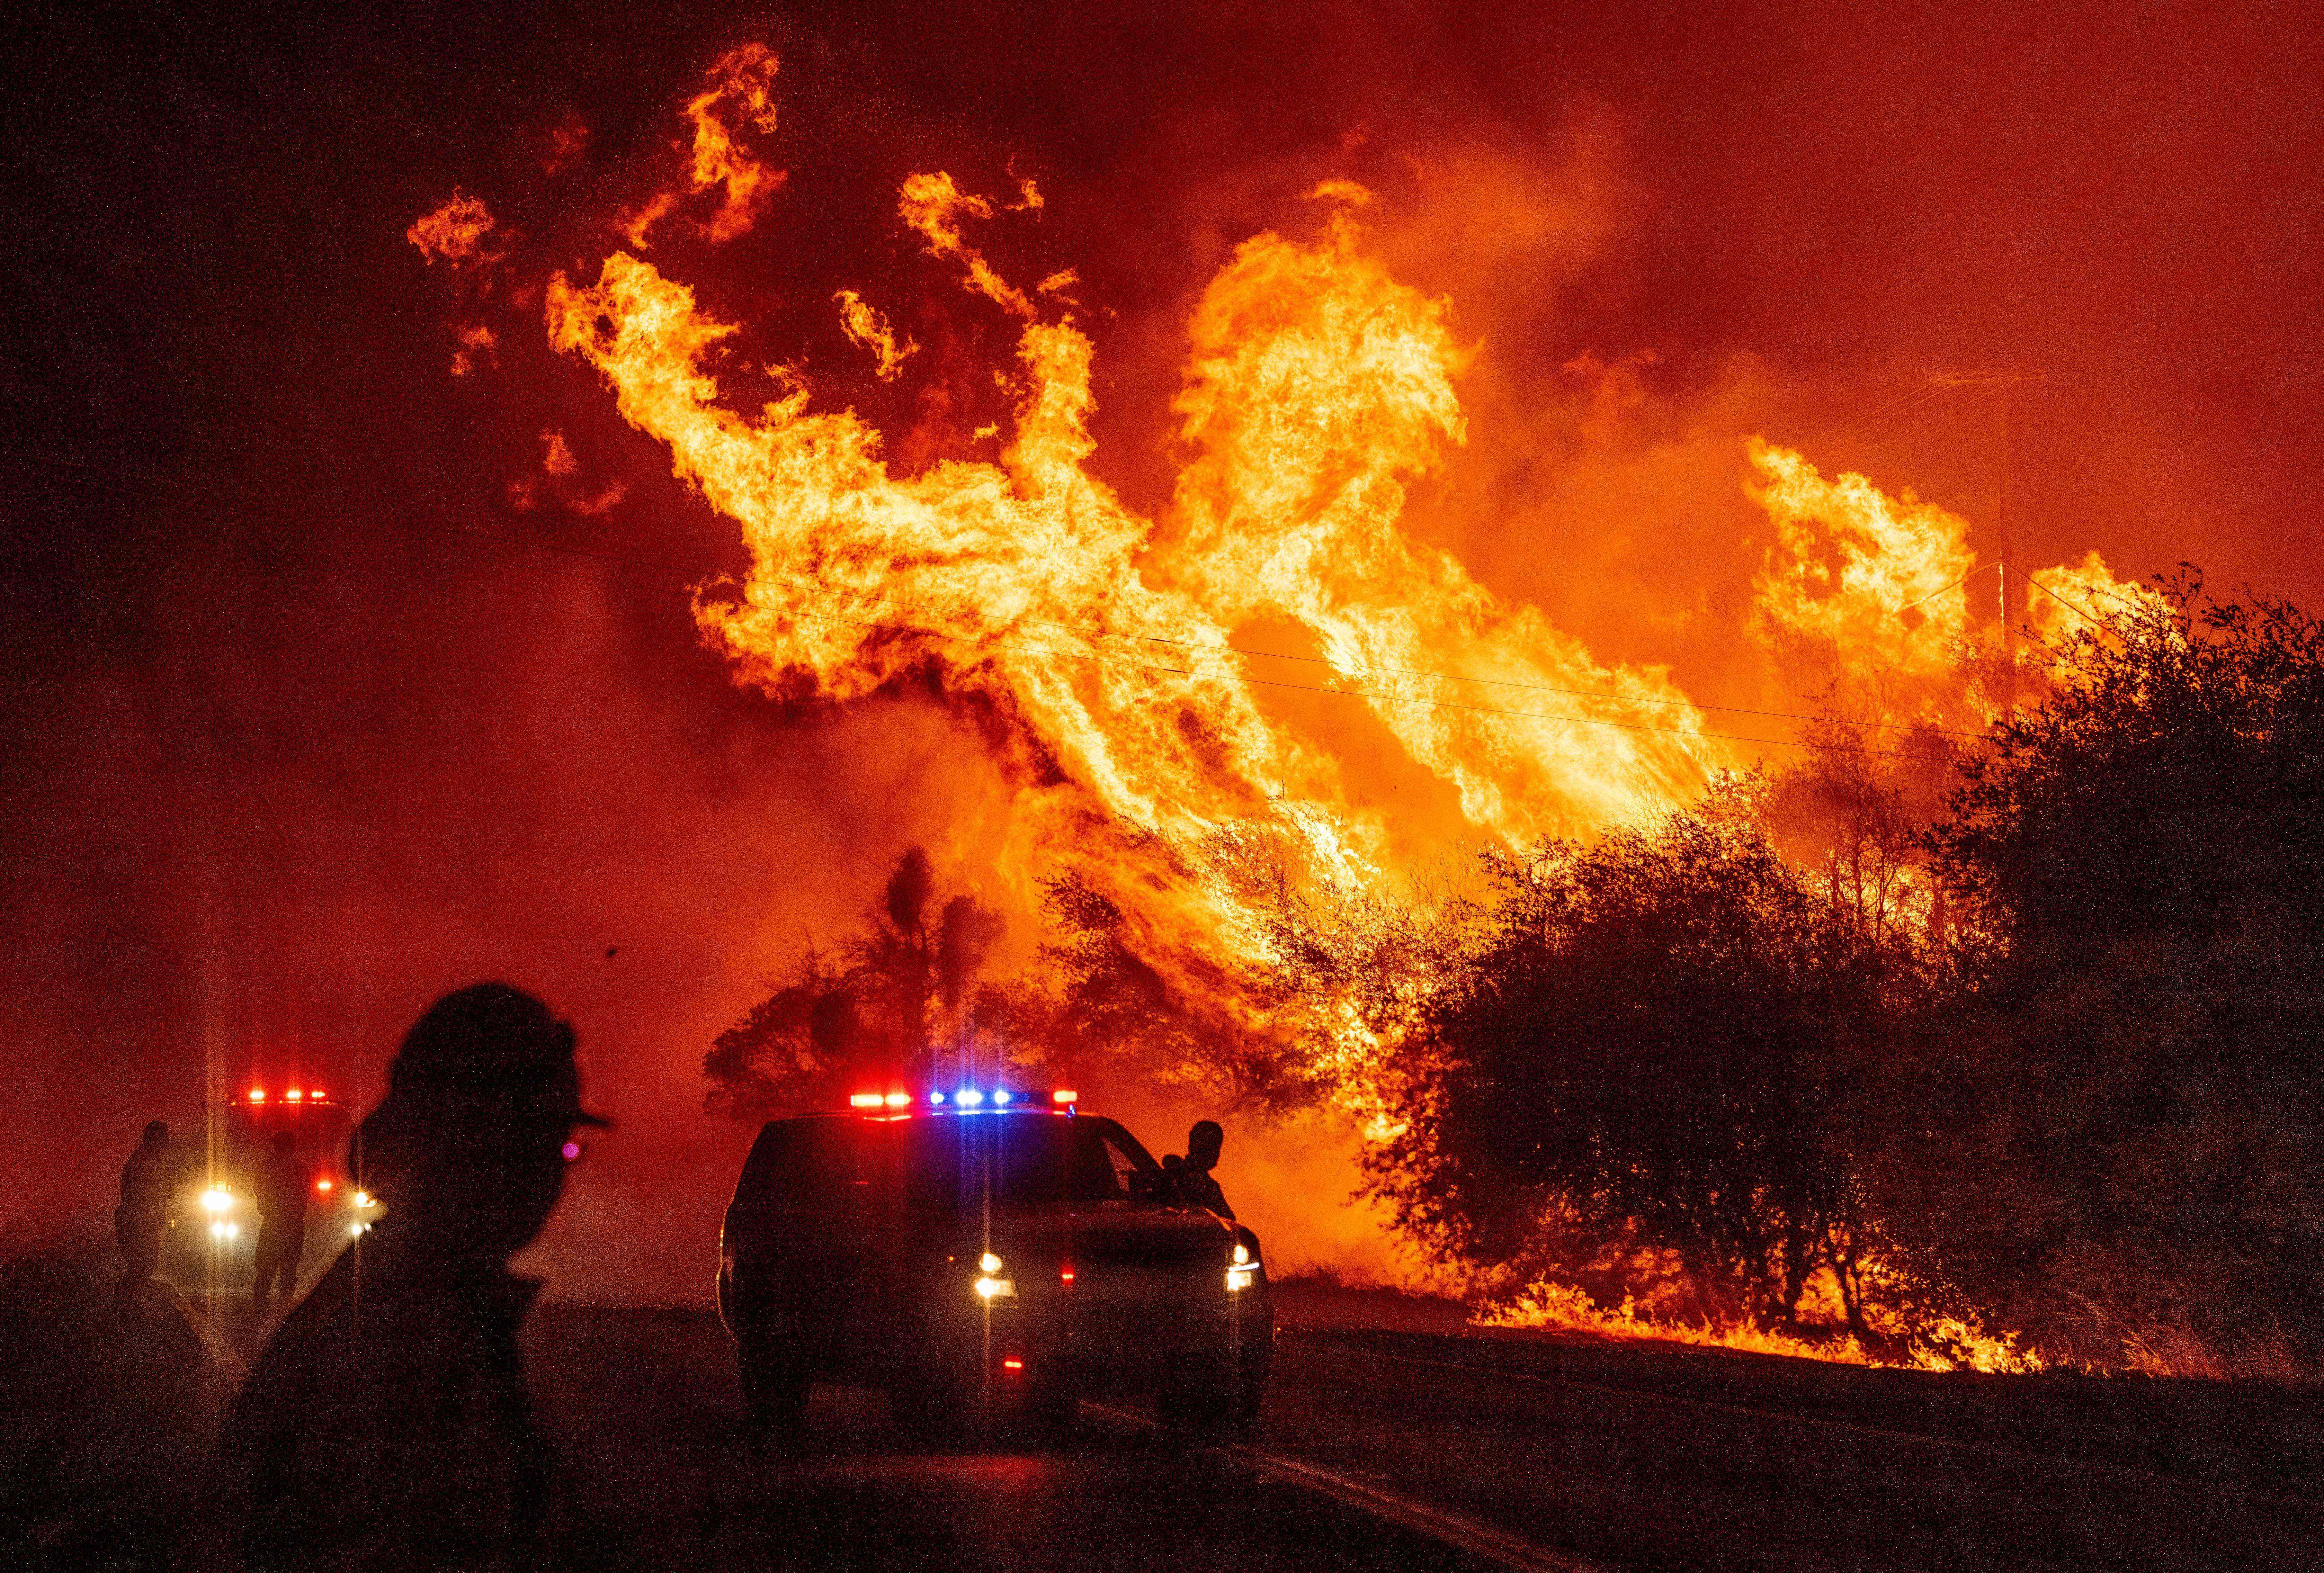 We could hear the trees exploding : Deadly swath of wildfires rage in the West; death toll rises to 6